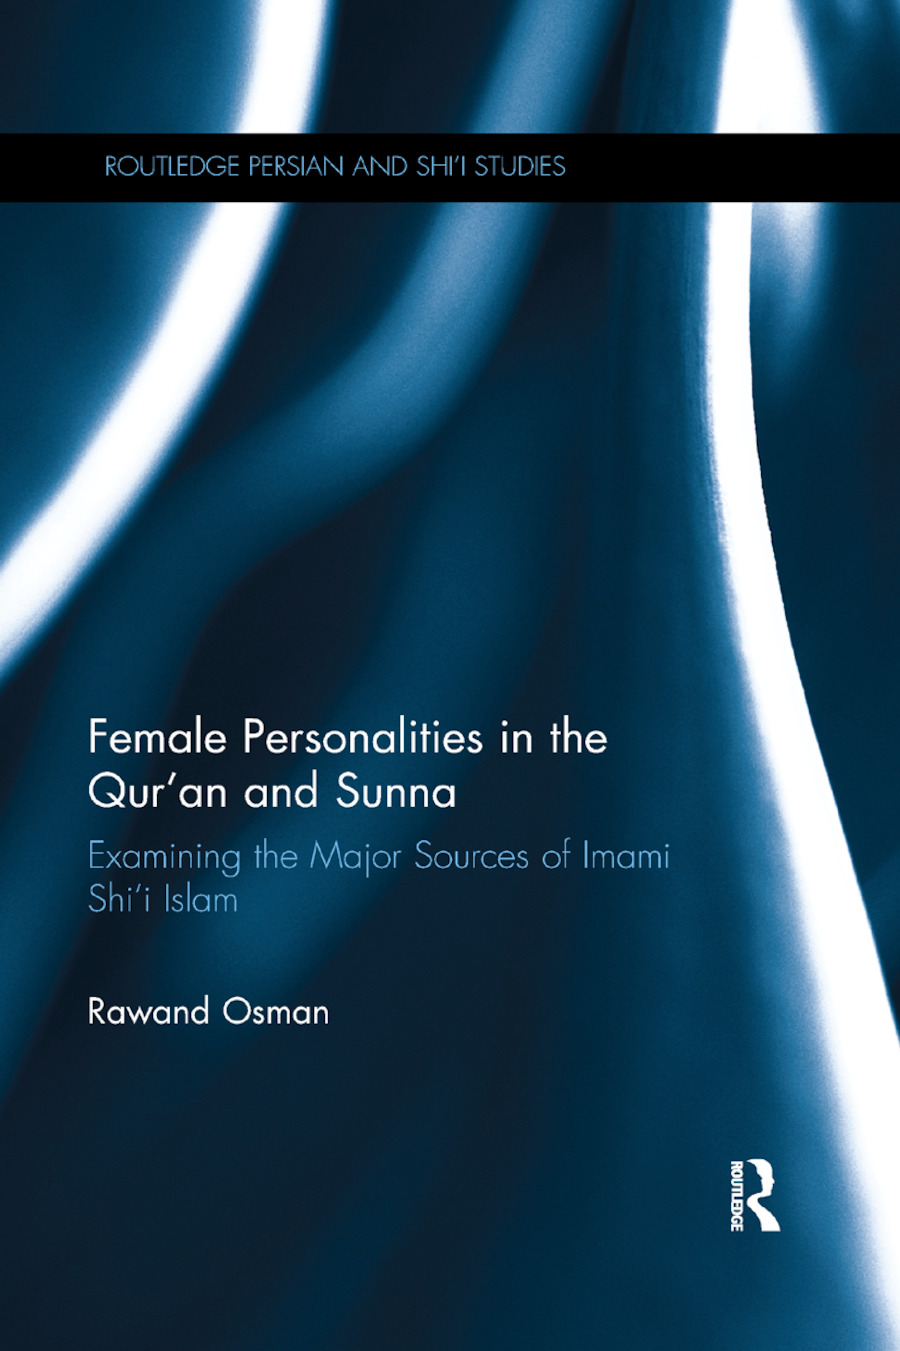 Female Personalities in the Qur'an and Sunna: Examining the Major Sources of Imami Shi'i Islam book cover